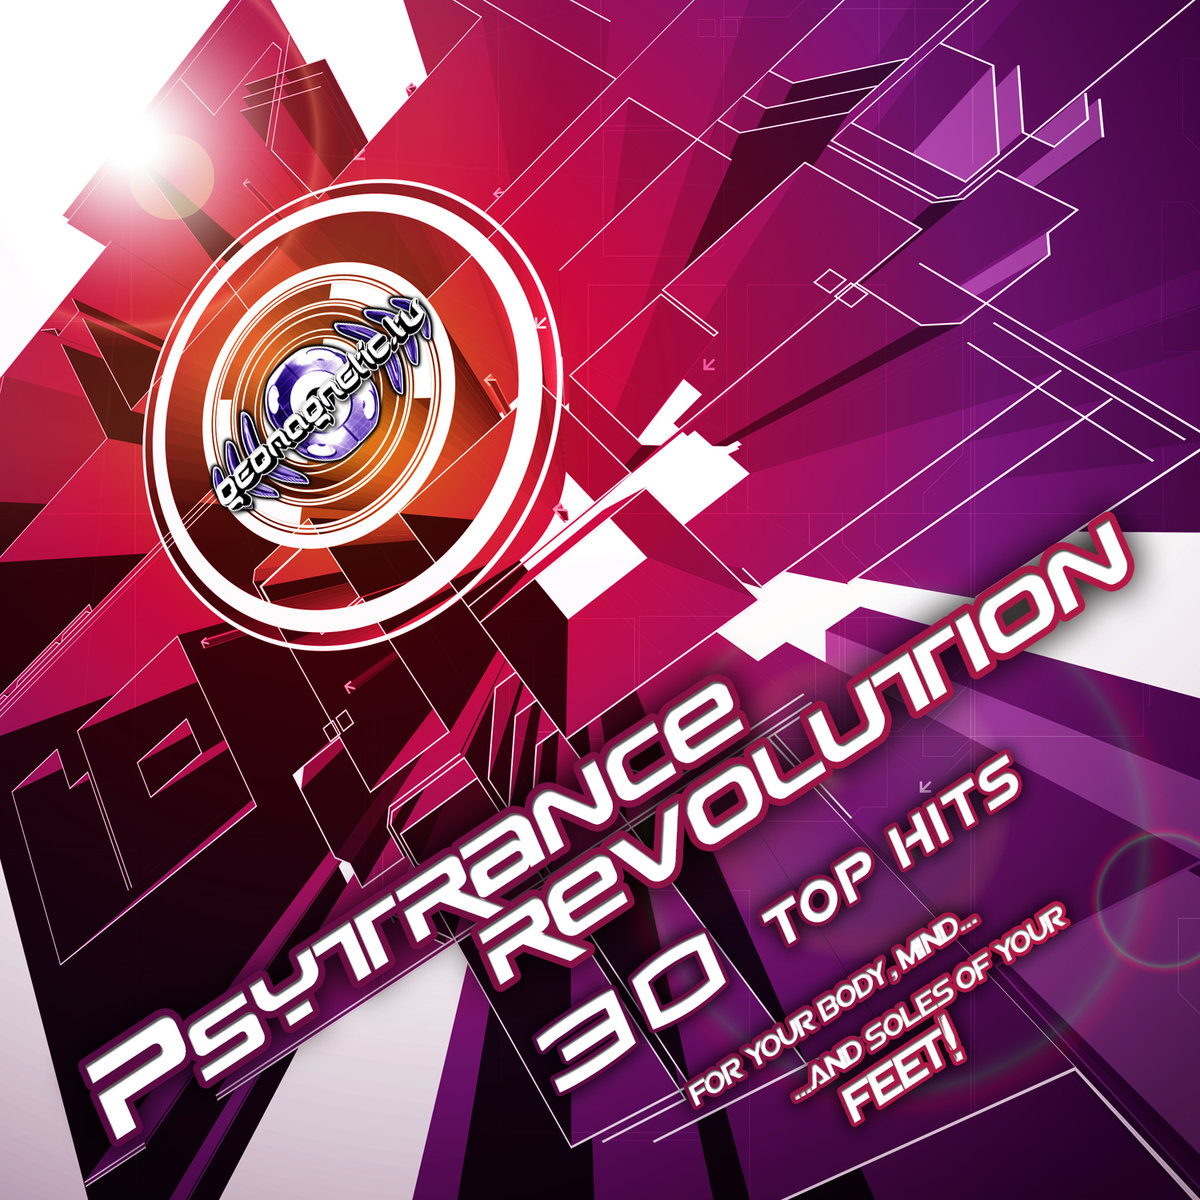 Outreach & Biokinetix - Snatch @ 'Various Artists - Psytrance Revolution (30 Top Hits)' album (electronic, goa)